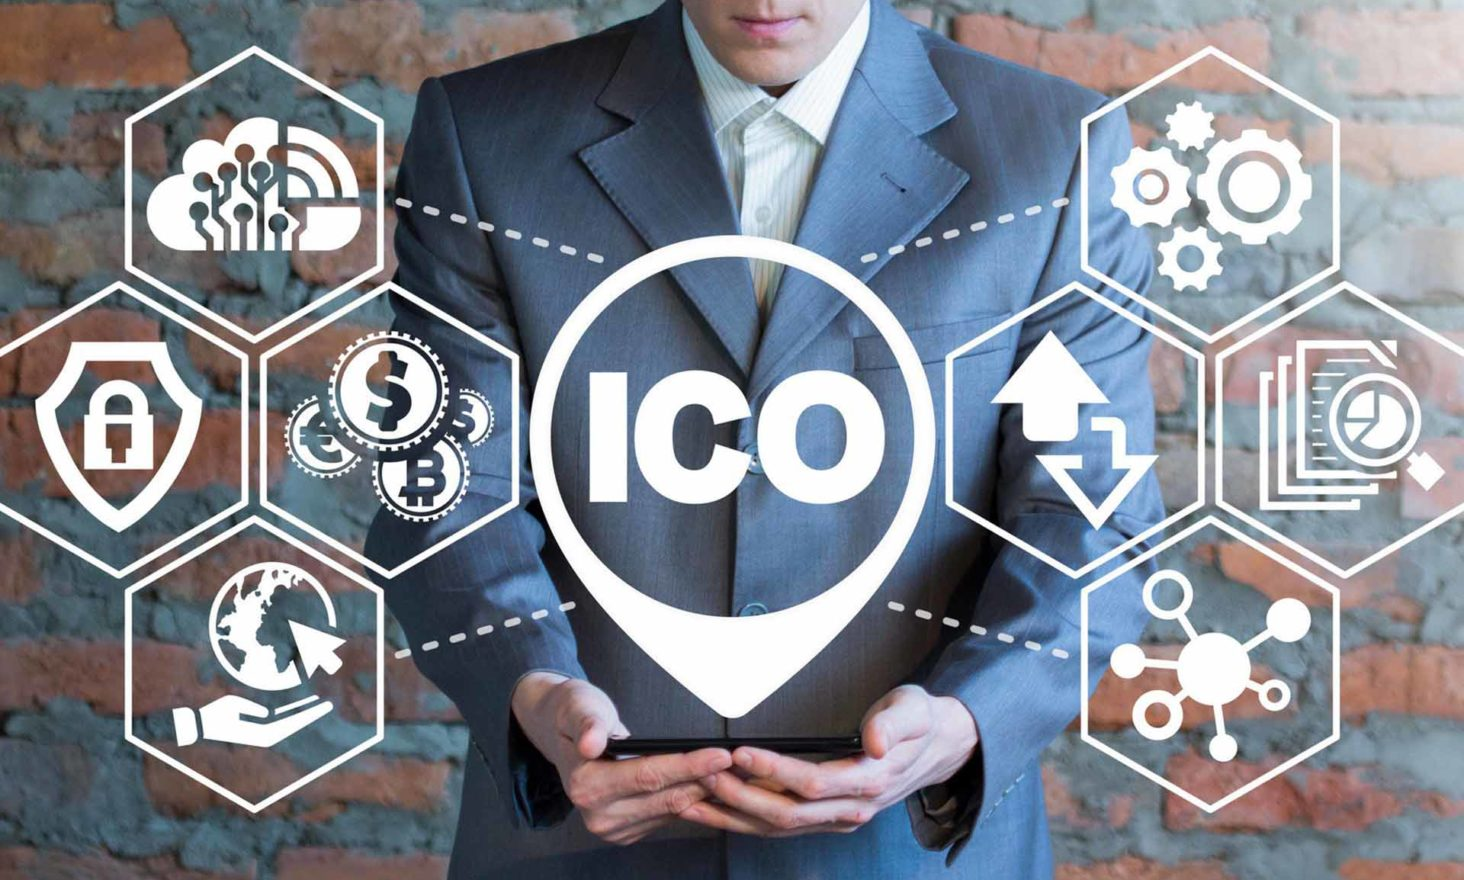 These 3 ICOs Could Make You Rich in 2018